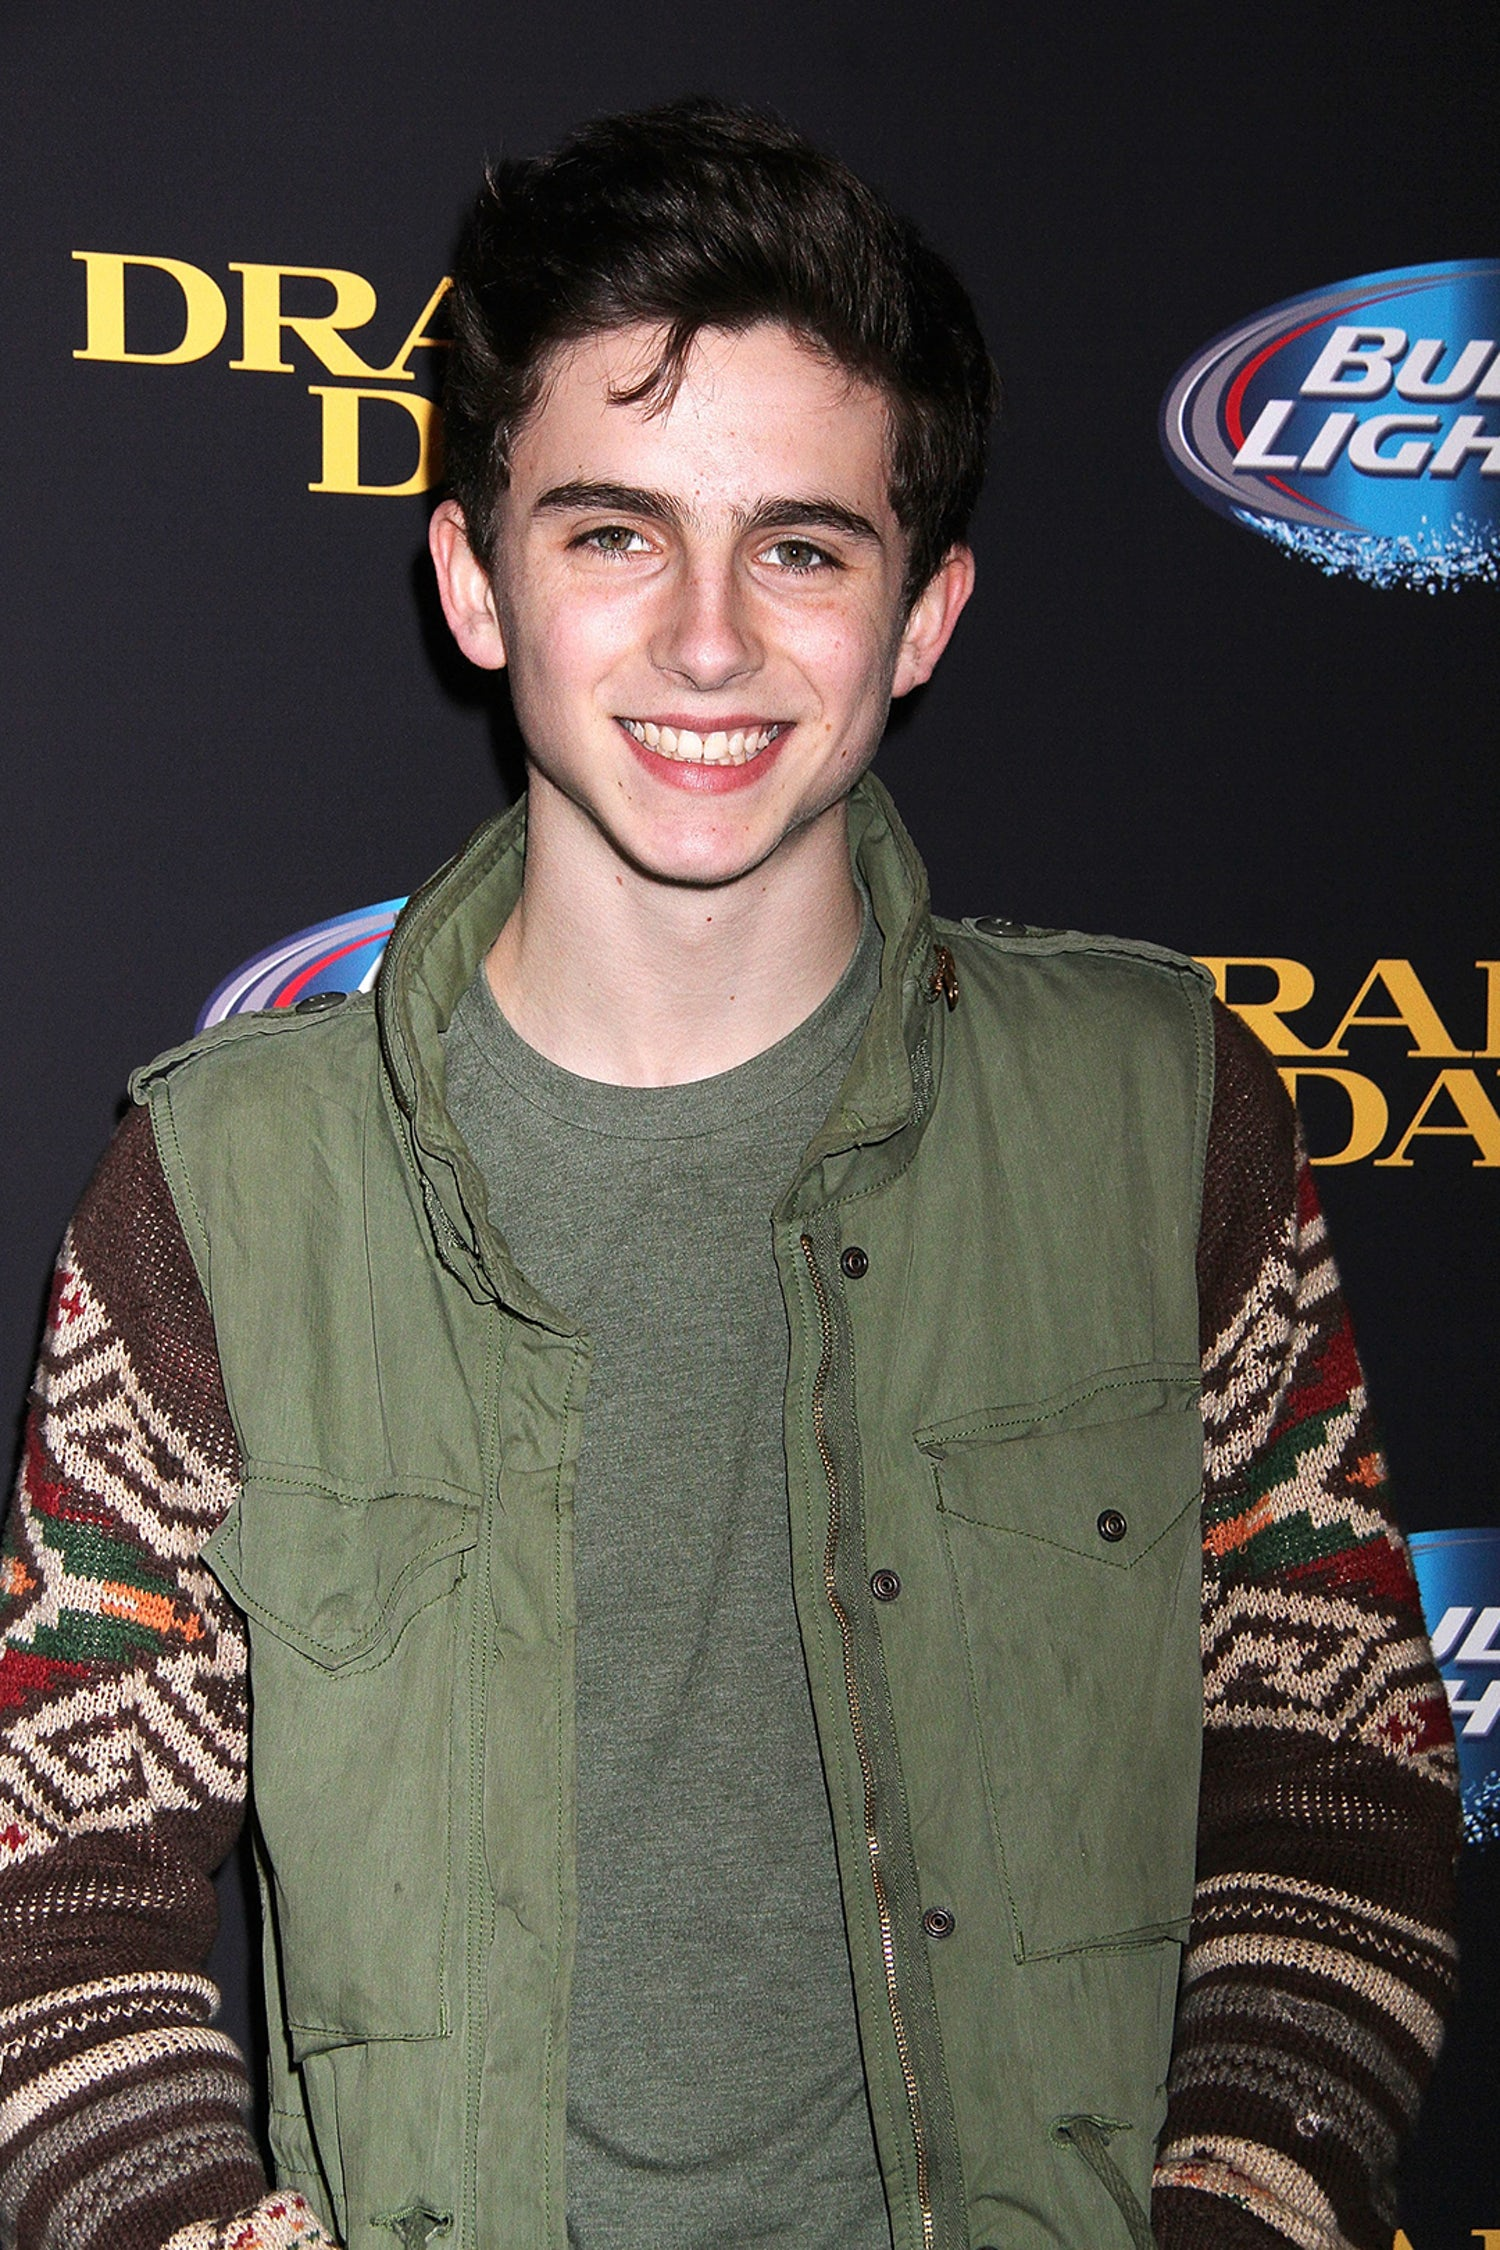 Timothee Chalamet Draft Day inarticle